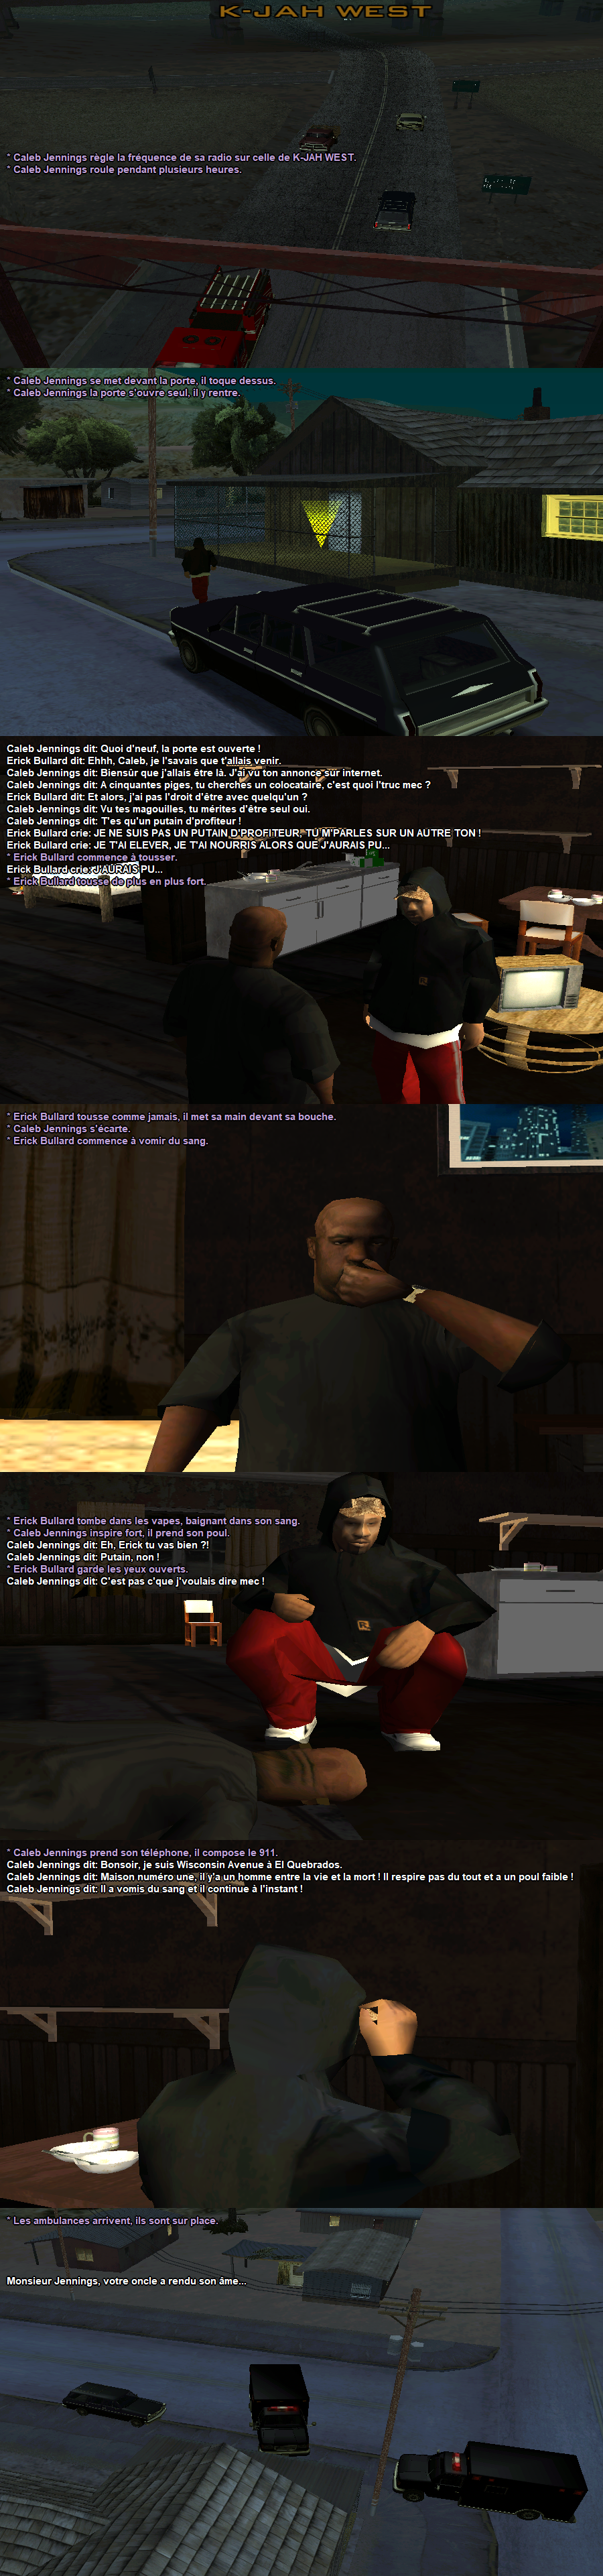 Los Santos Sheriff's Department - A tradition of service (8) - Page 16 1536249728-c